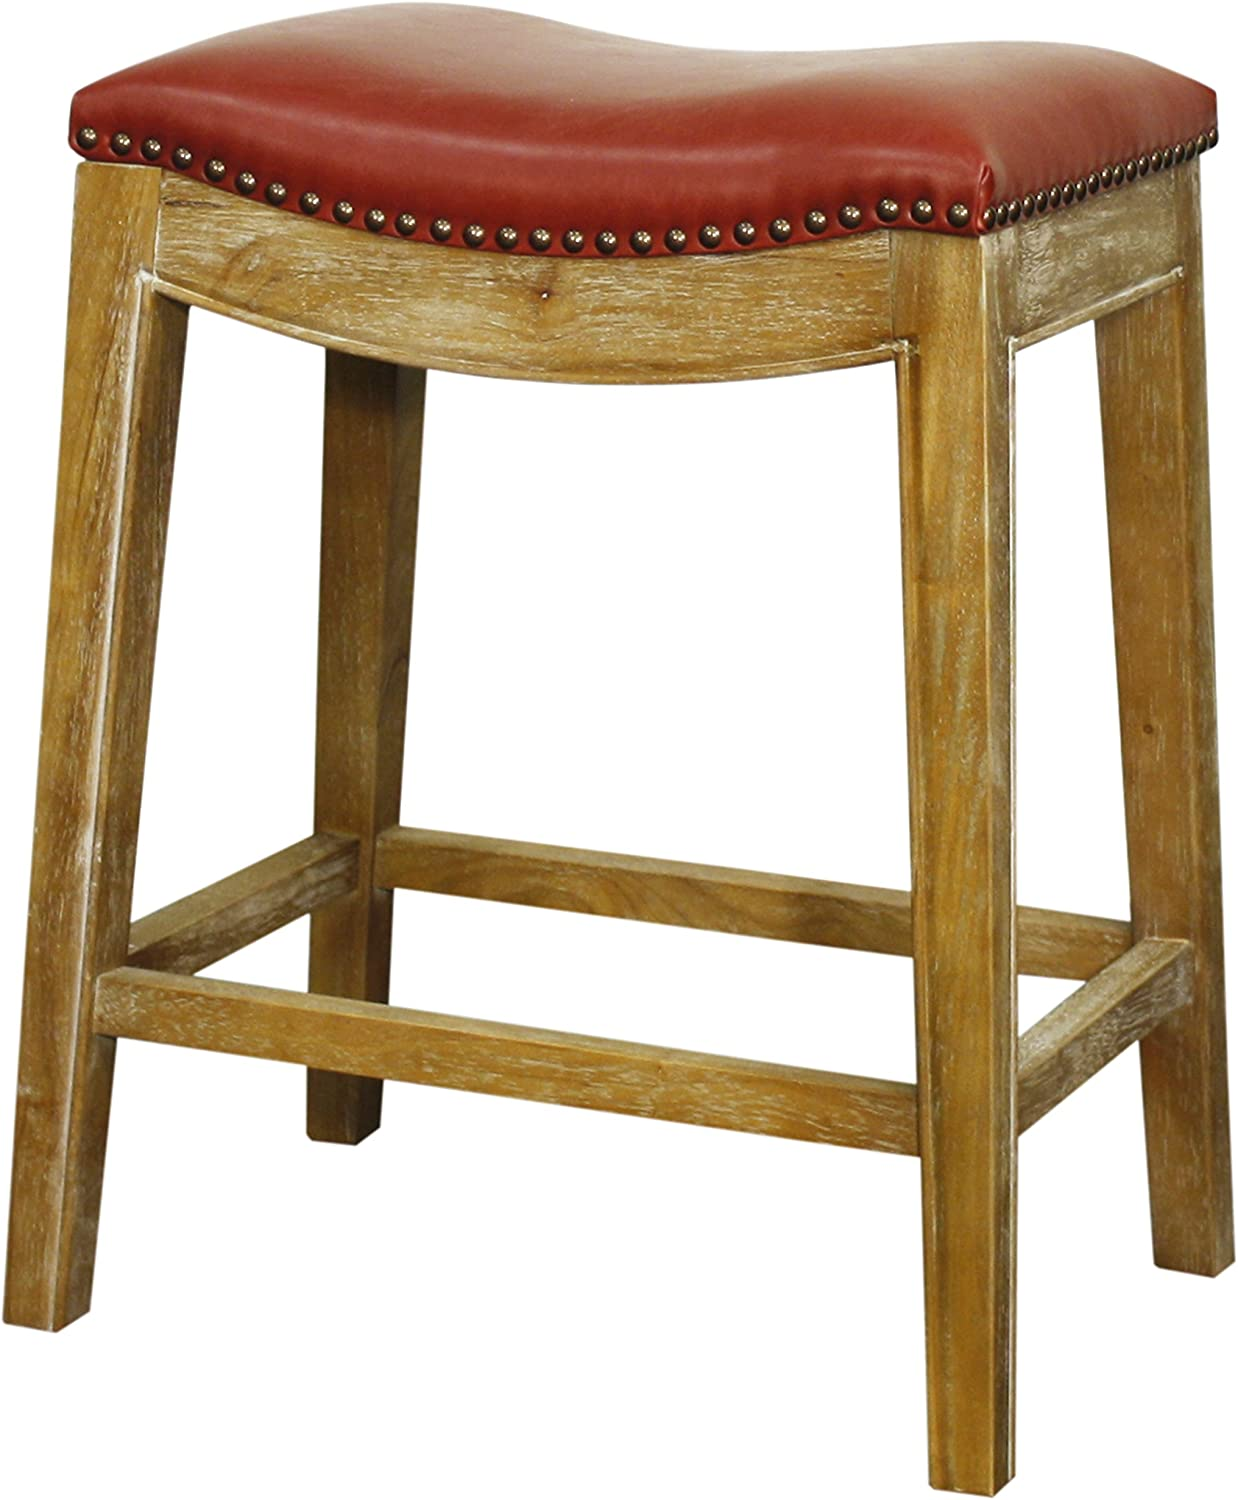 New Pacific Direct 358625B-V03-WS Elmo Bonded Leather Counter Stools, Vintage Red